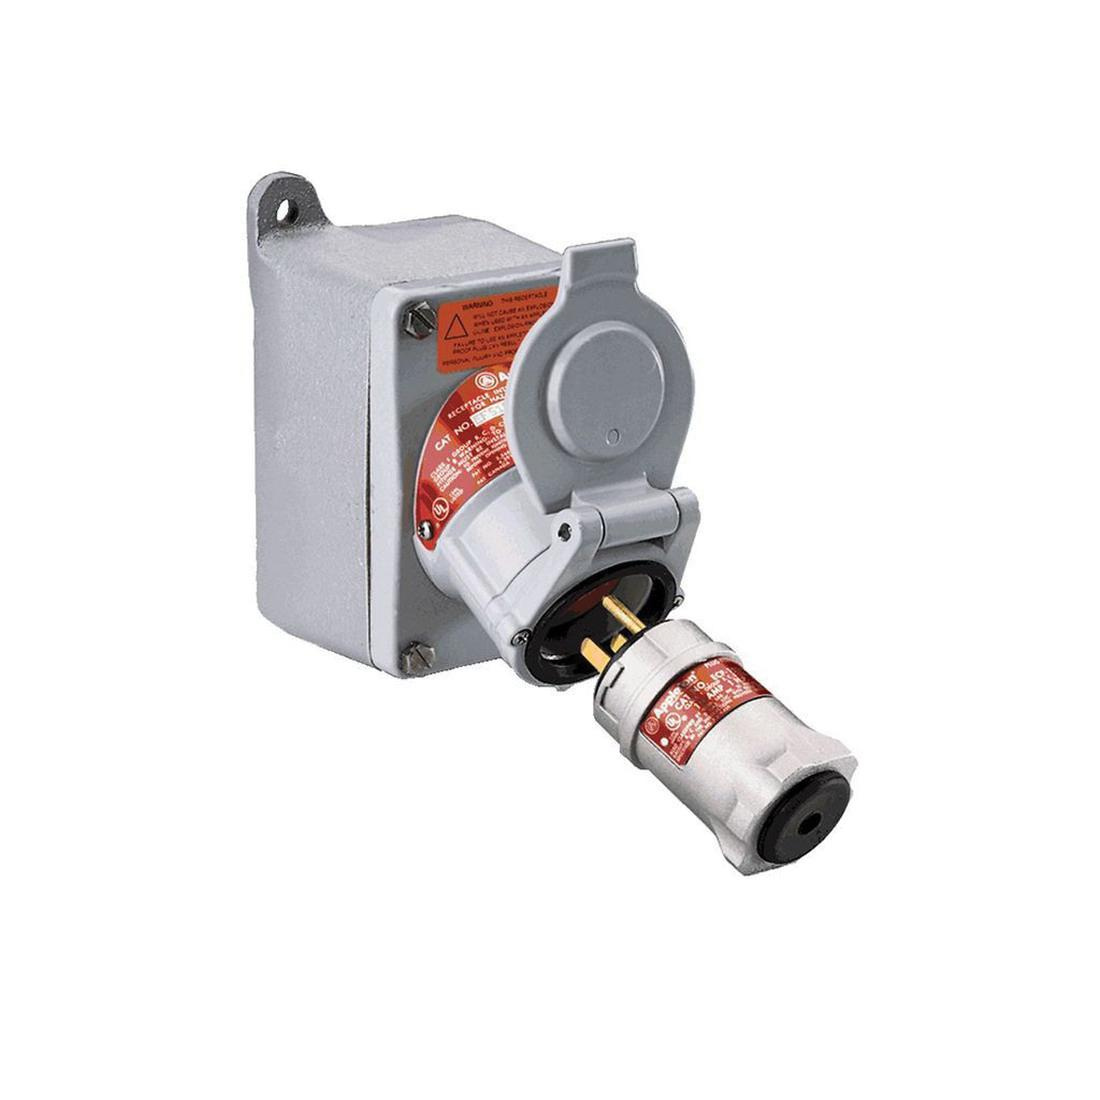 Appleton Efs175 2023 1 Gang Dead End Pin And Sleeve Receptacle With Ac Wiring Mounting